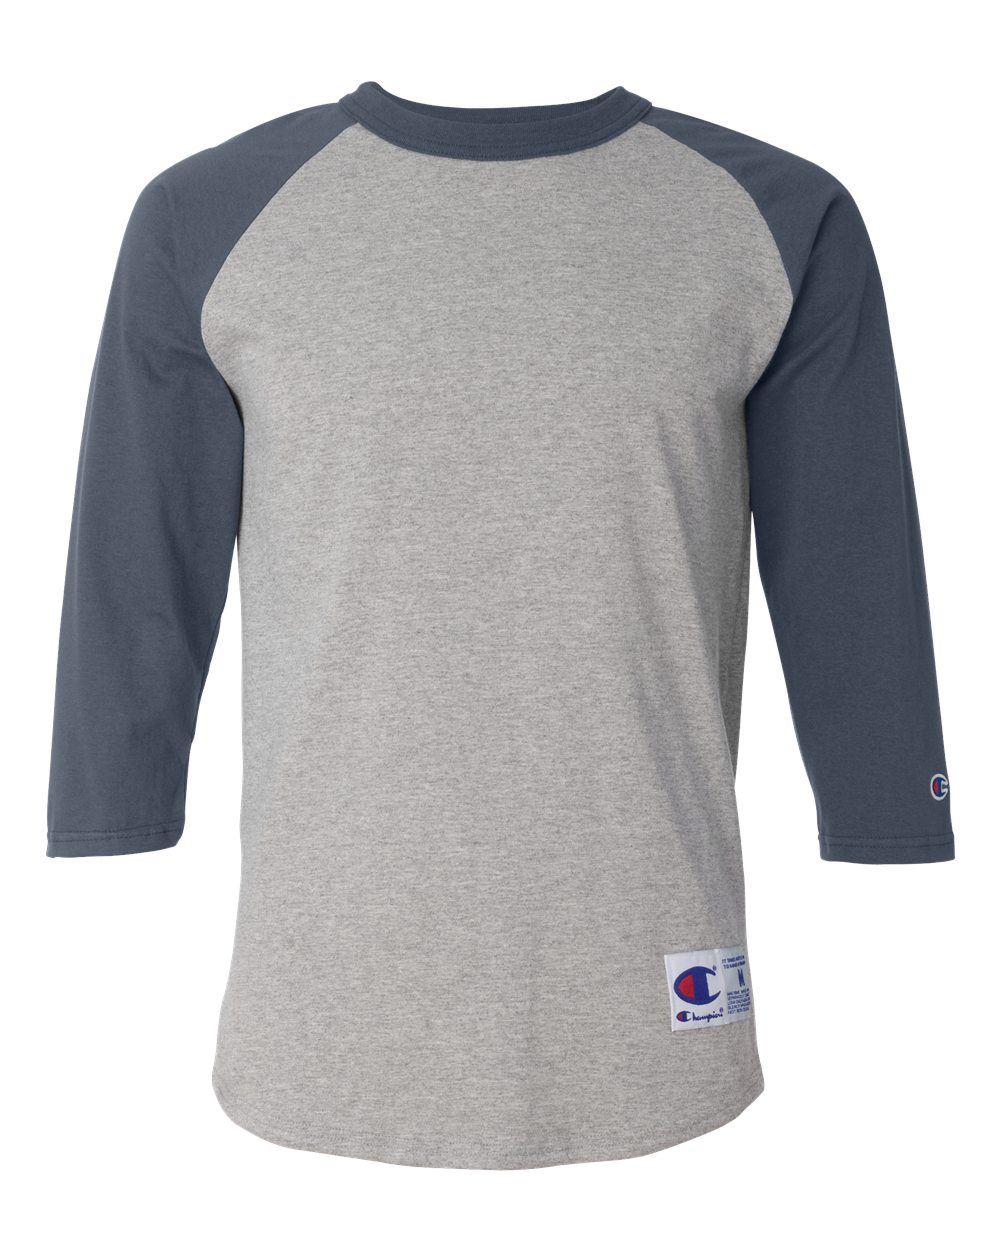 click to view OxfordGrey/Navy